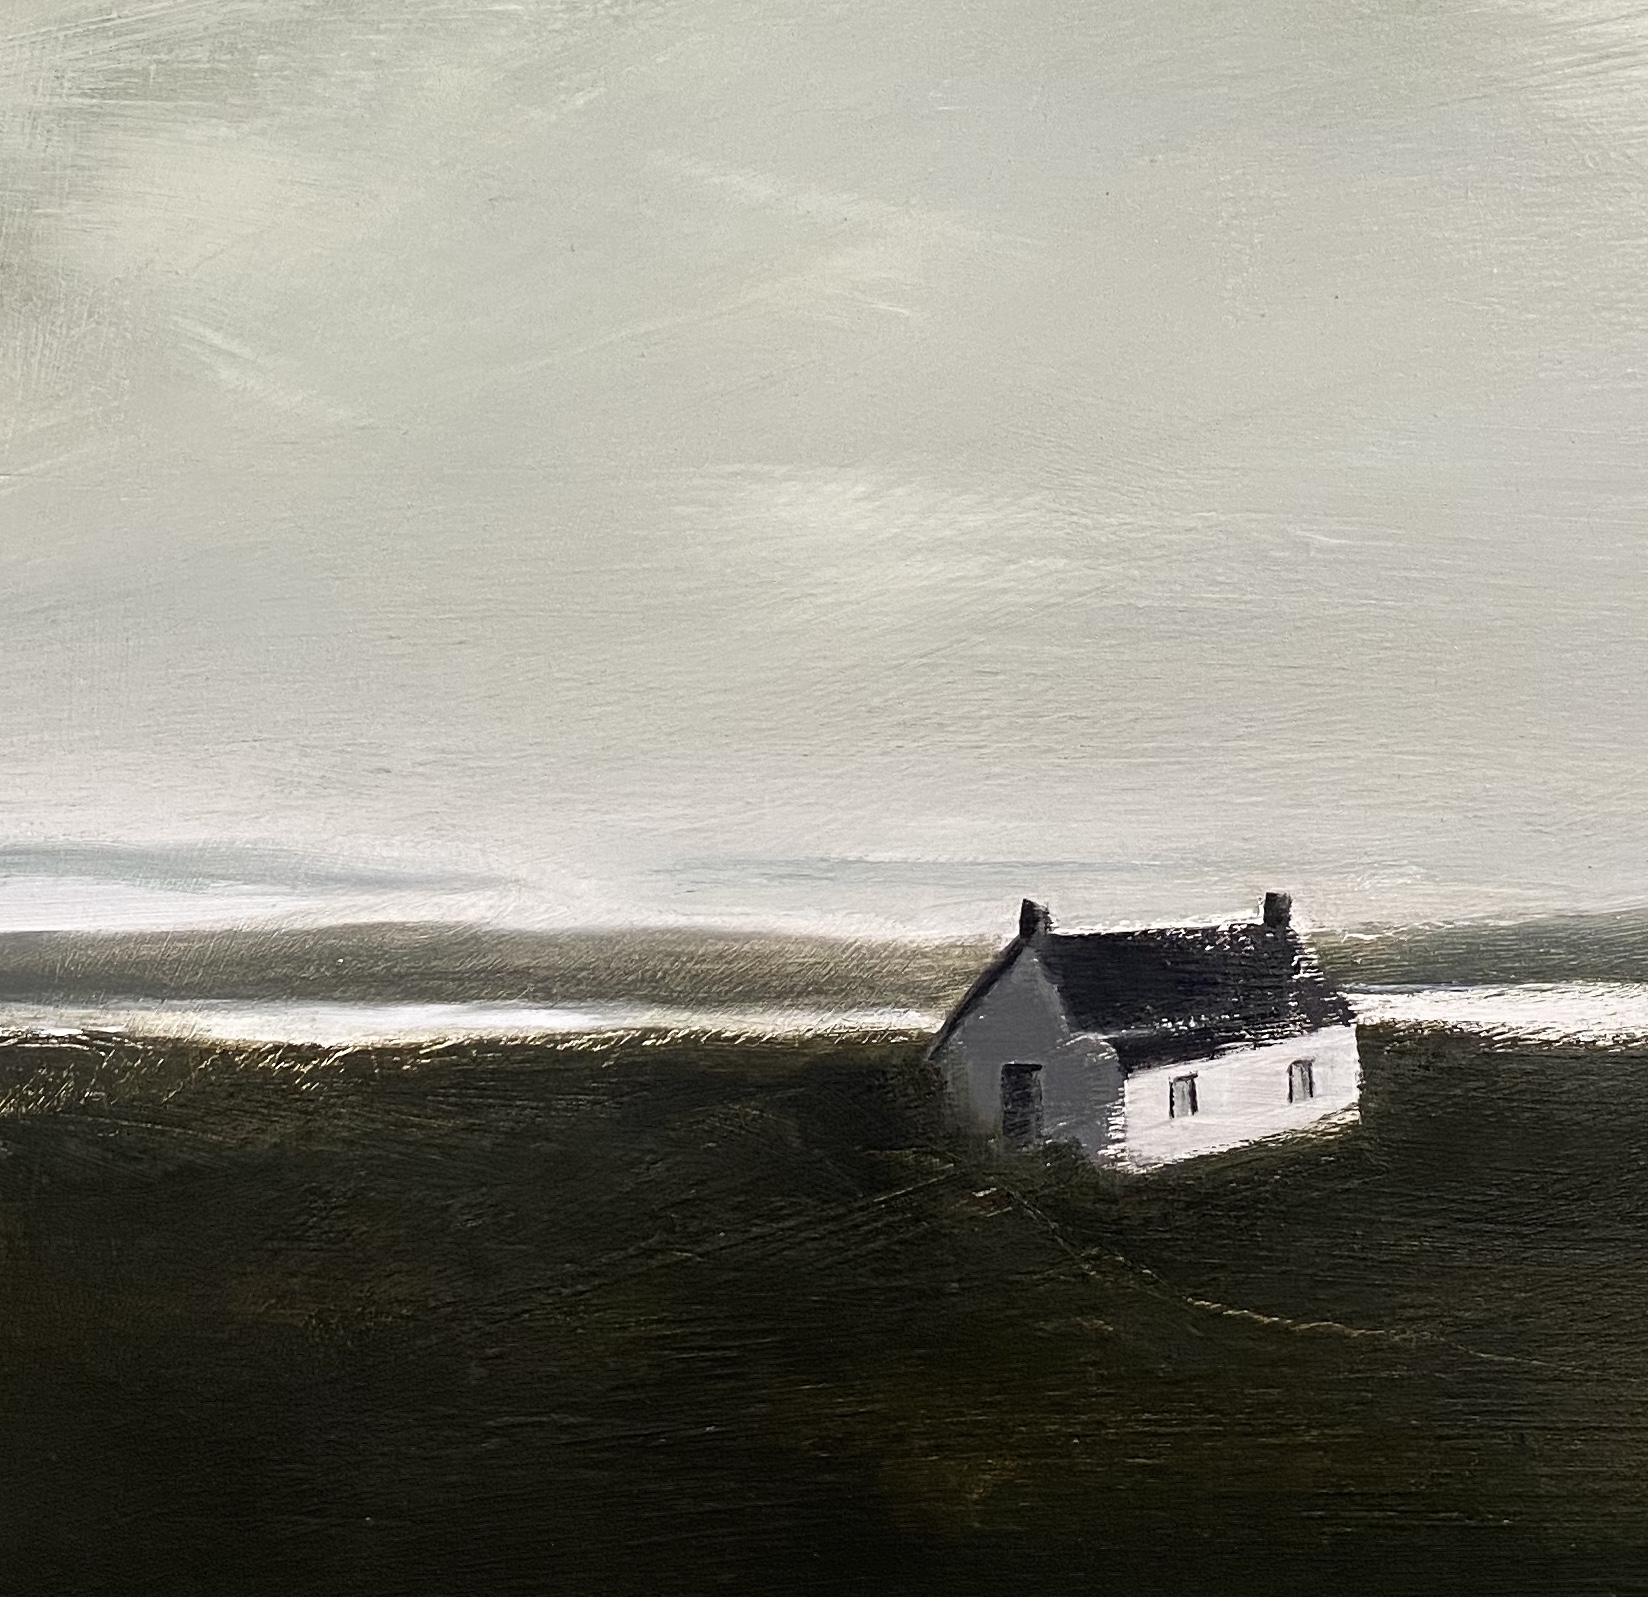 Detail from Isolated House/Scottish sea loch